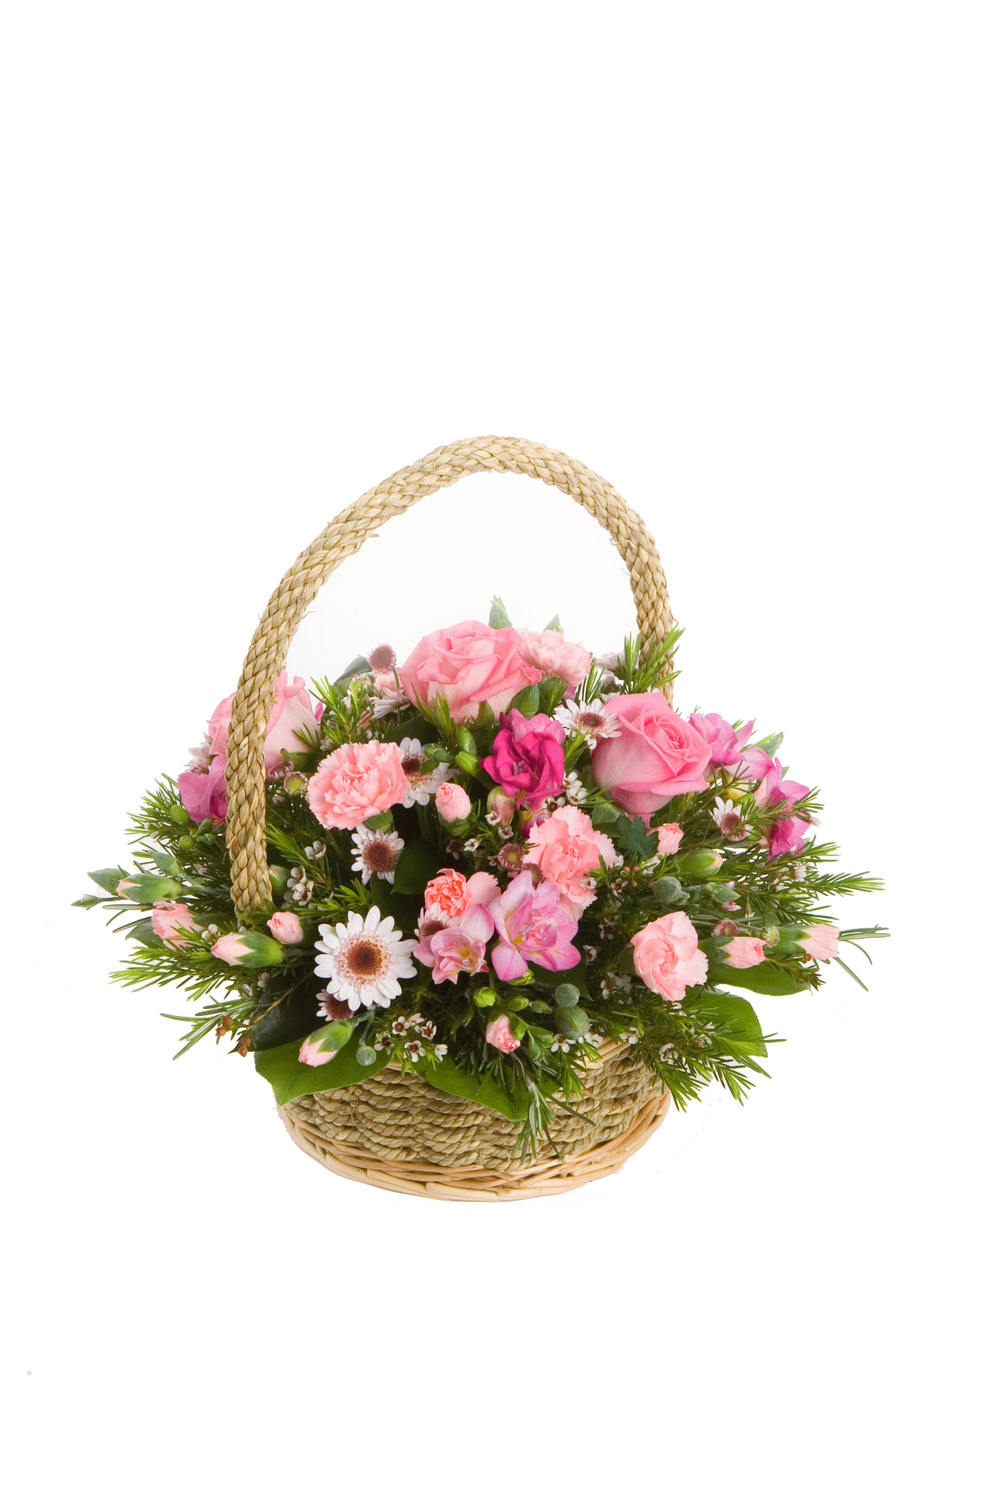 Mothers day worle florists free local delivery in the weston in the pink flower basket izmirmasajfo